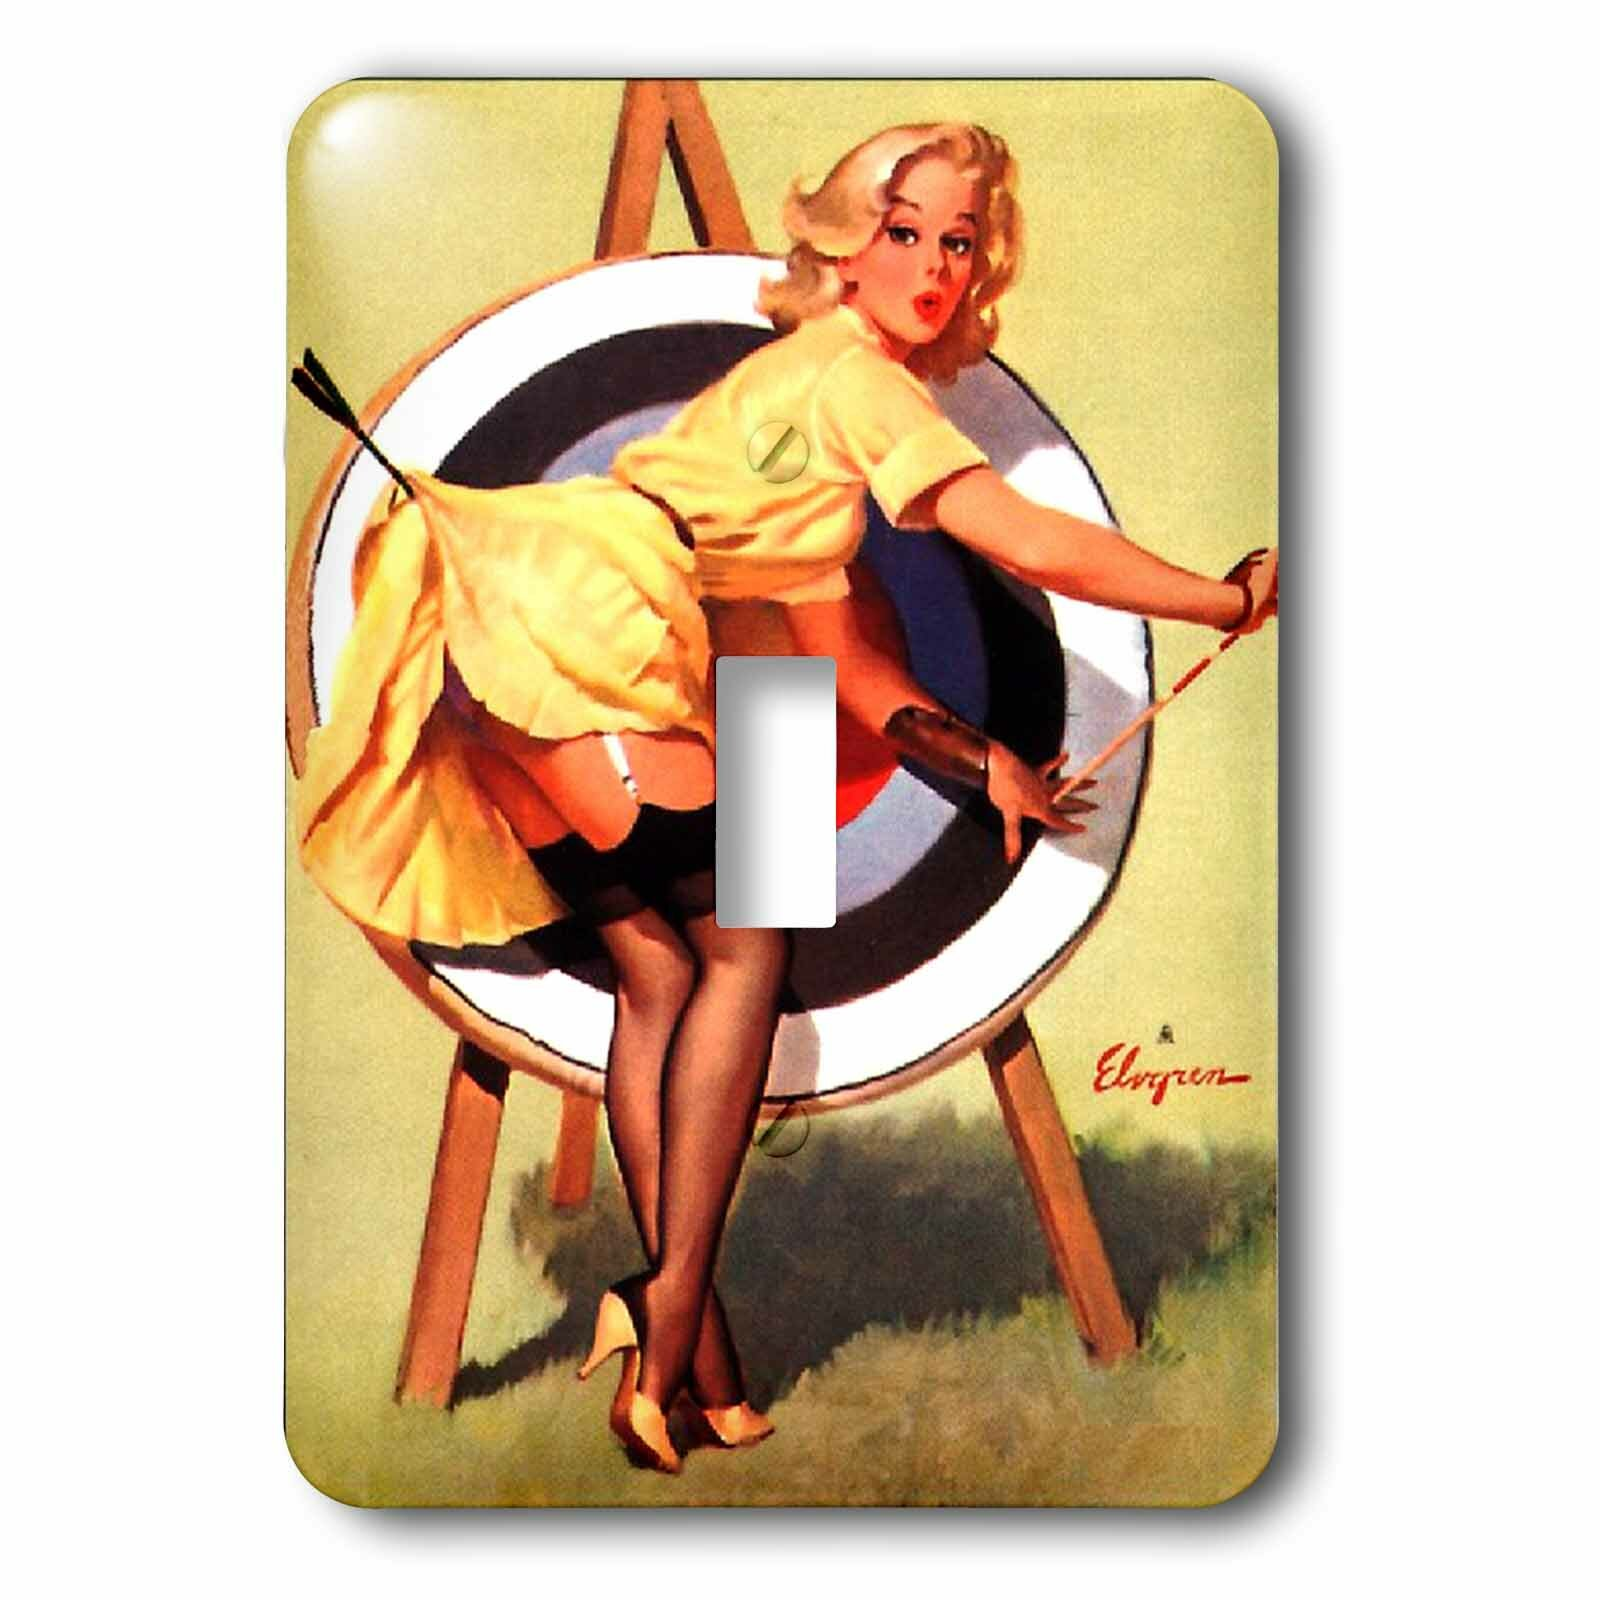 3drose Elvgren Pinup 1 Gang Toggle Light Switch Wall Plate Wayfair